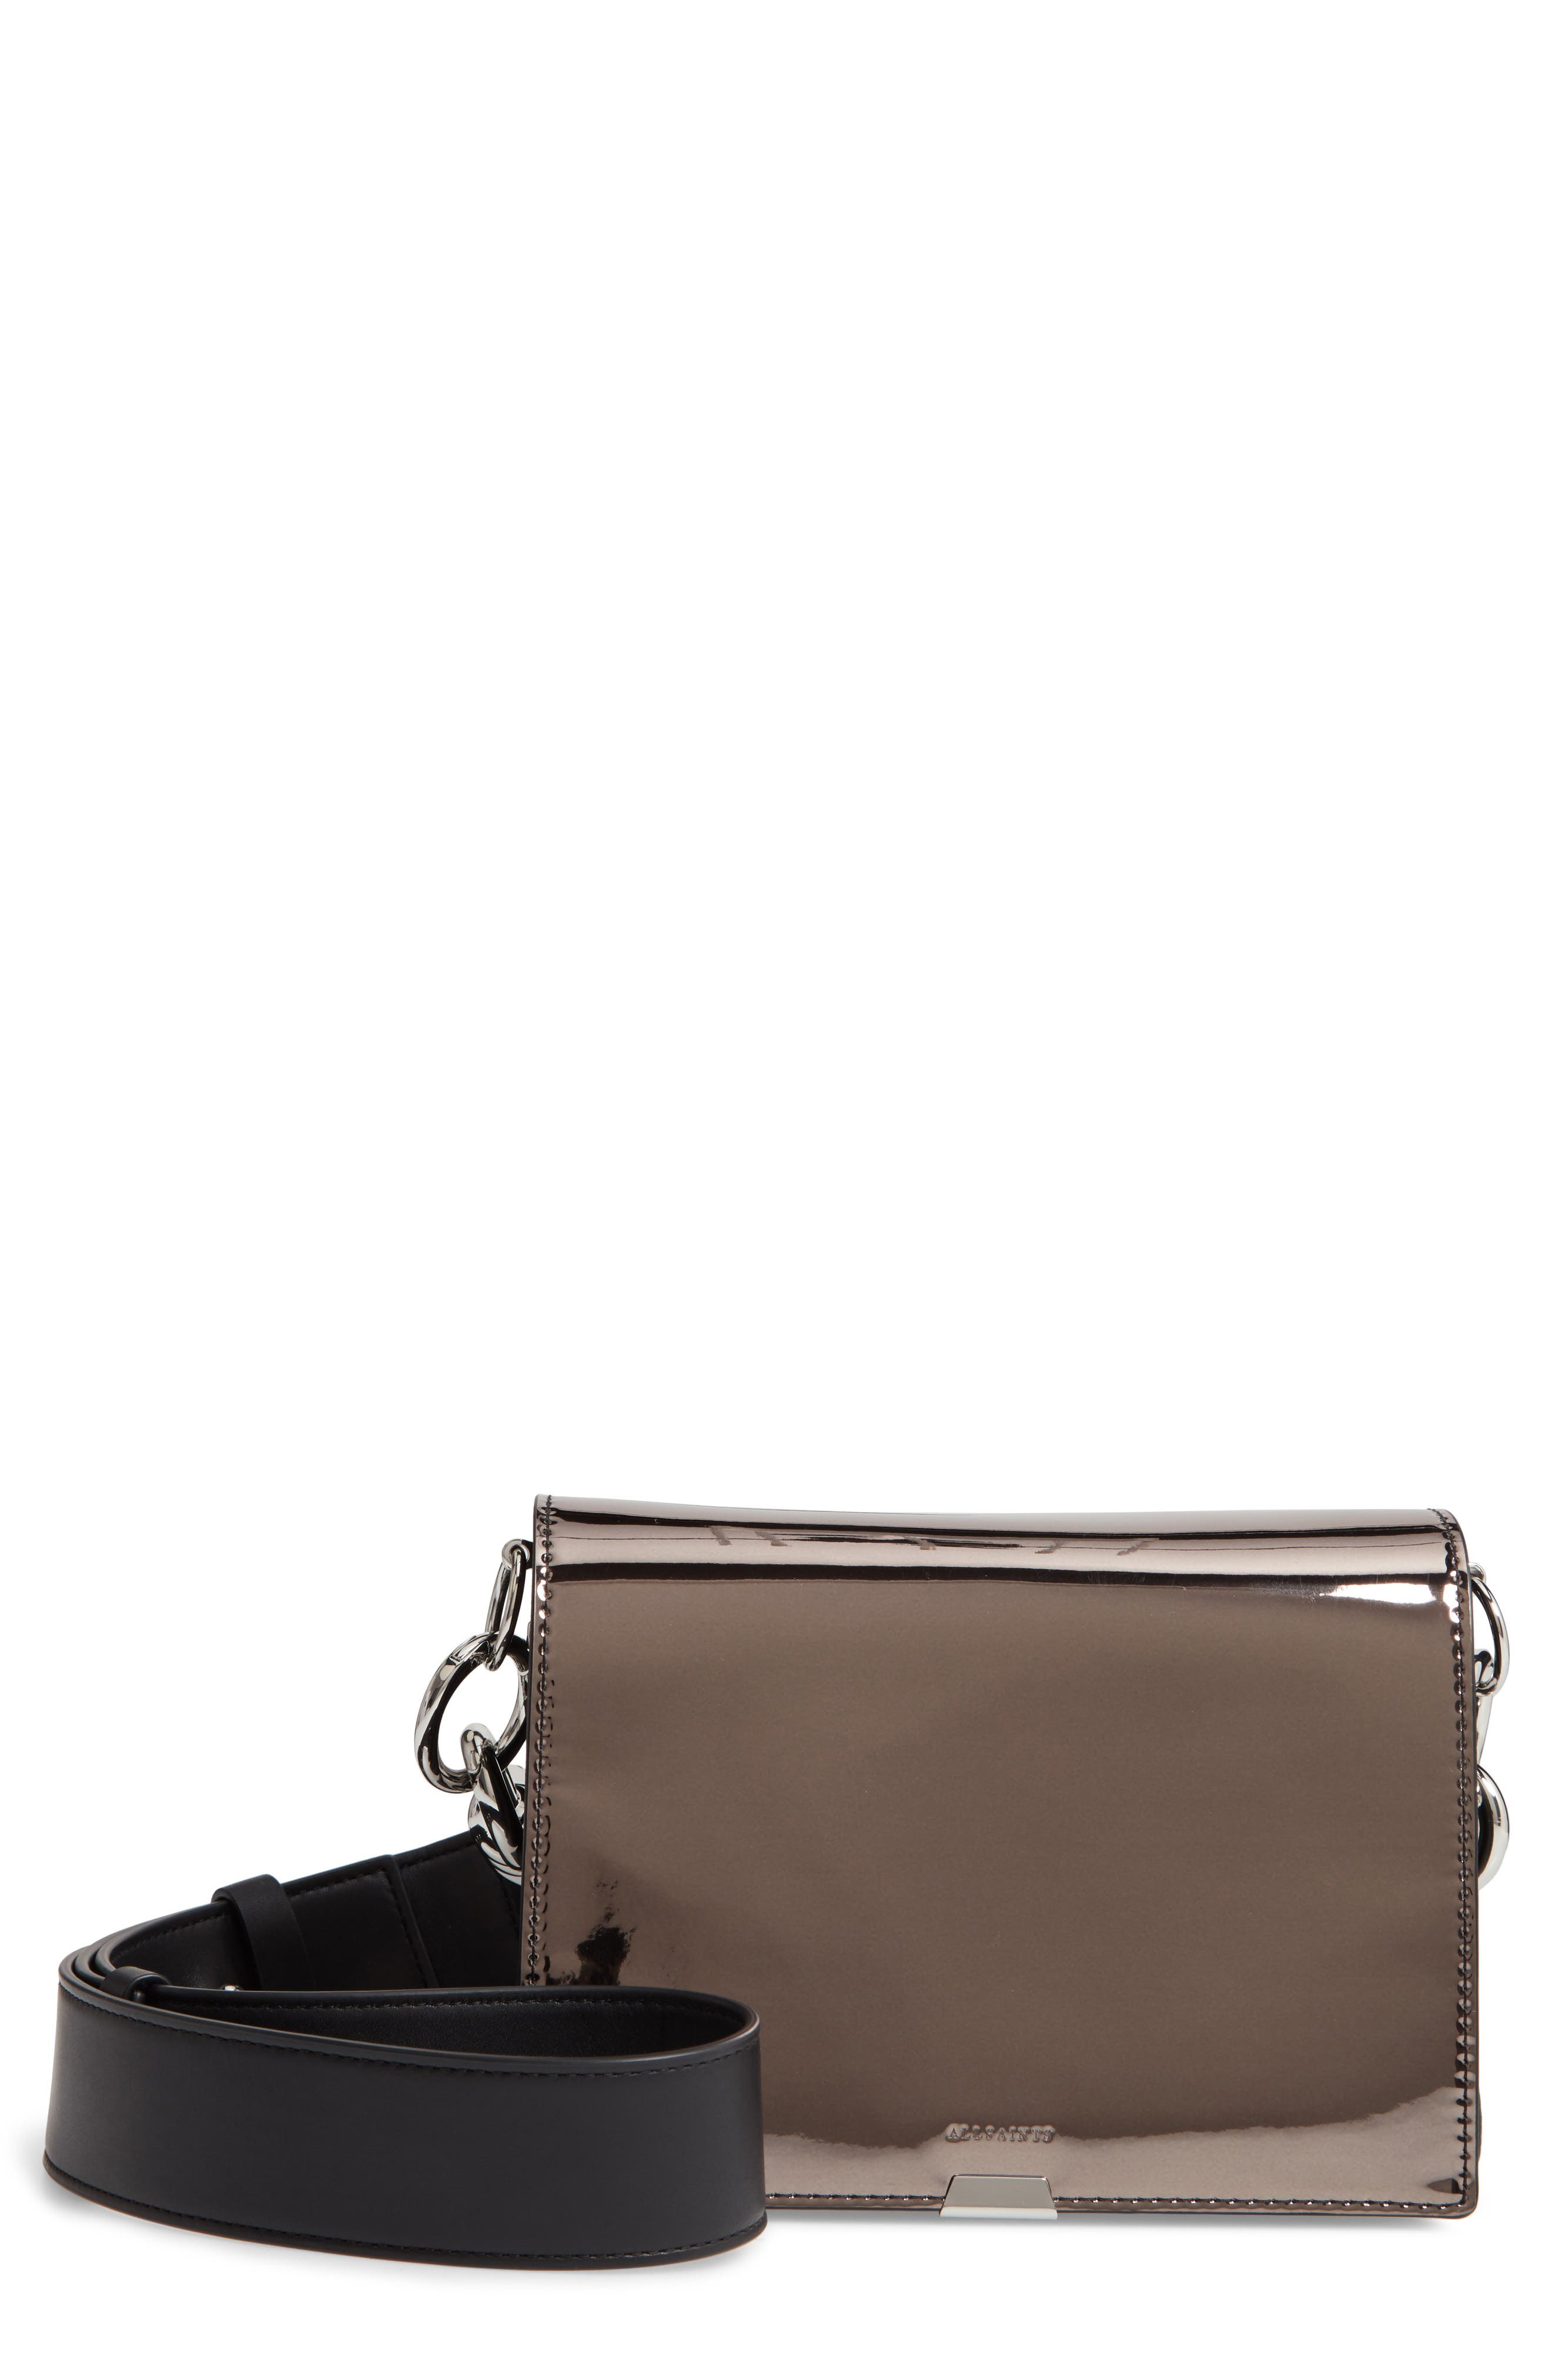 ALLSAINTS, Captain Mirror Flap Leather Shoulder Bag, Main thumbnail 1, color, GUNMETAL